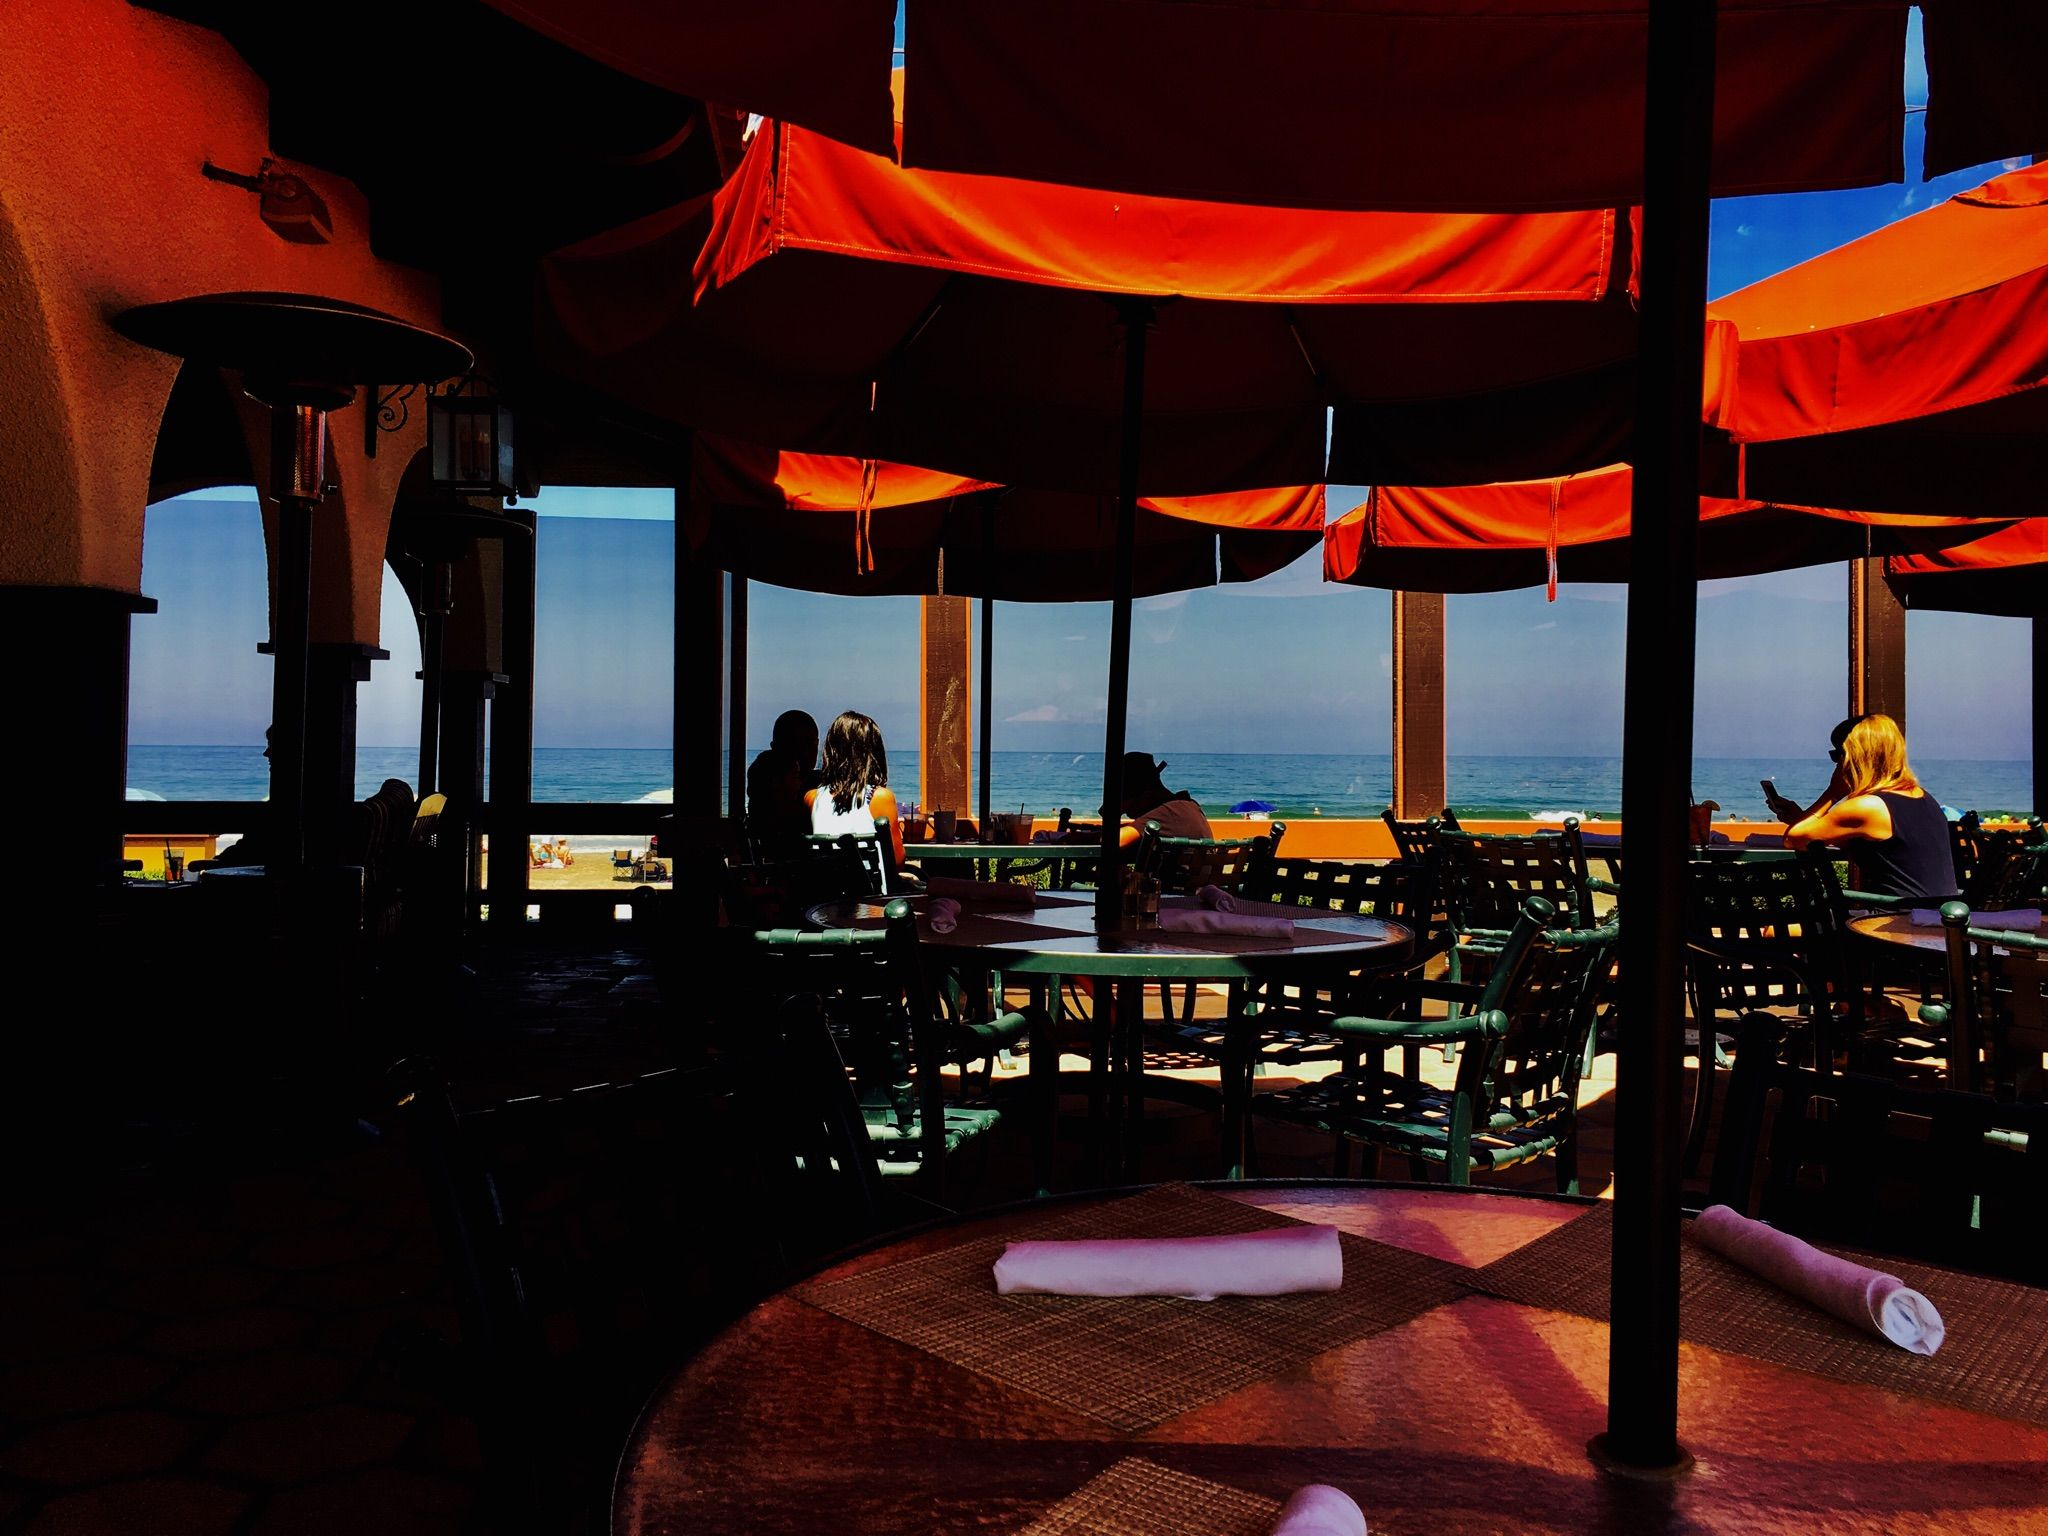 Wouldn't you rather be here, sipping cocktails and enjoying the sunshine? #TheShoresRestaurant #patiotime